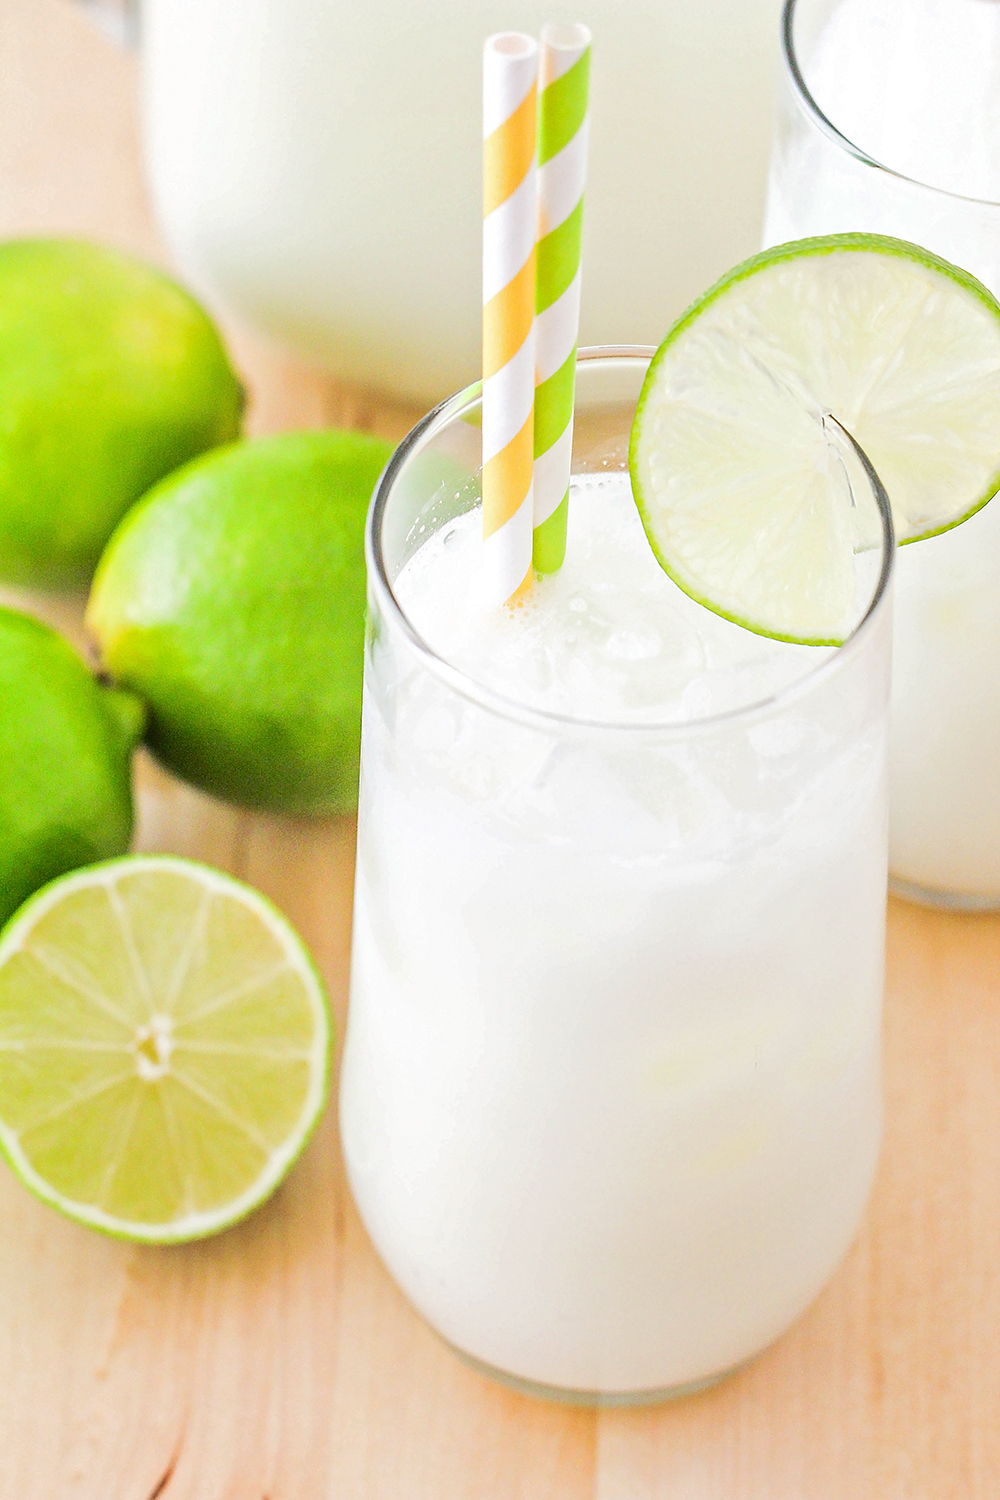 This Brazilian lemonade is amazingly refreshing, and so simple and delicious!